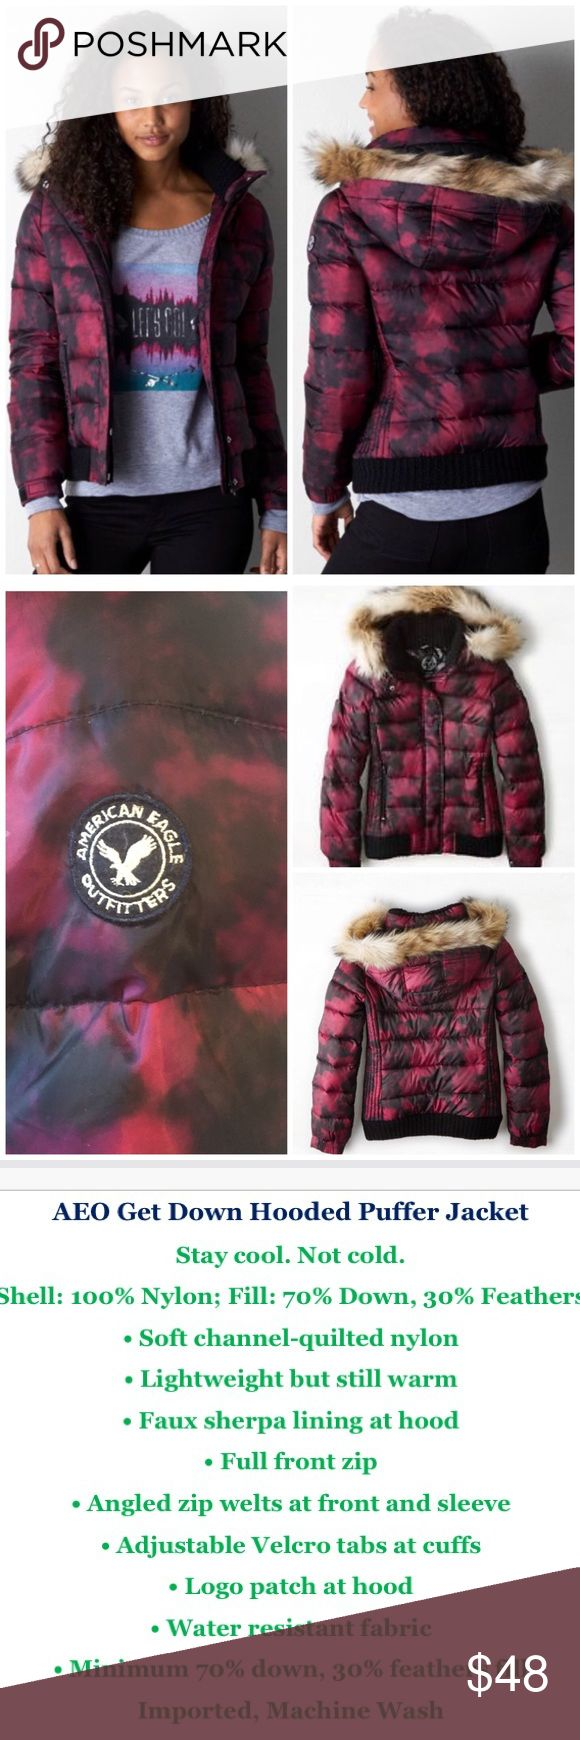 AEO Hooded Faux Fur Puffer, Burgundy, S Excellent condition warm puffer jacket with removable fur. This jacket was only worn twice so it's practically new. Great fall/winter wardrobe essential! American Eagle Outfitters Jackets & Coats Puffers